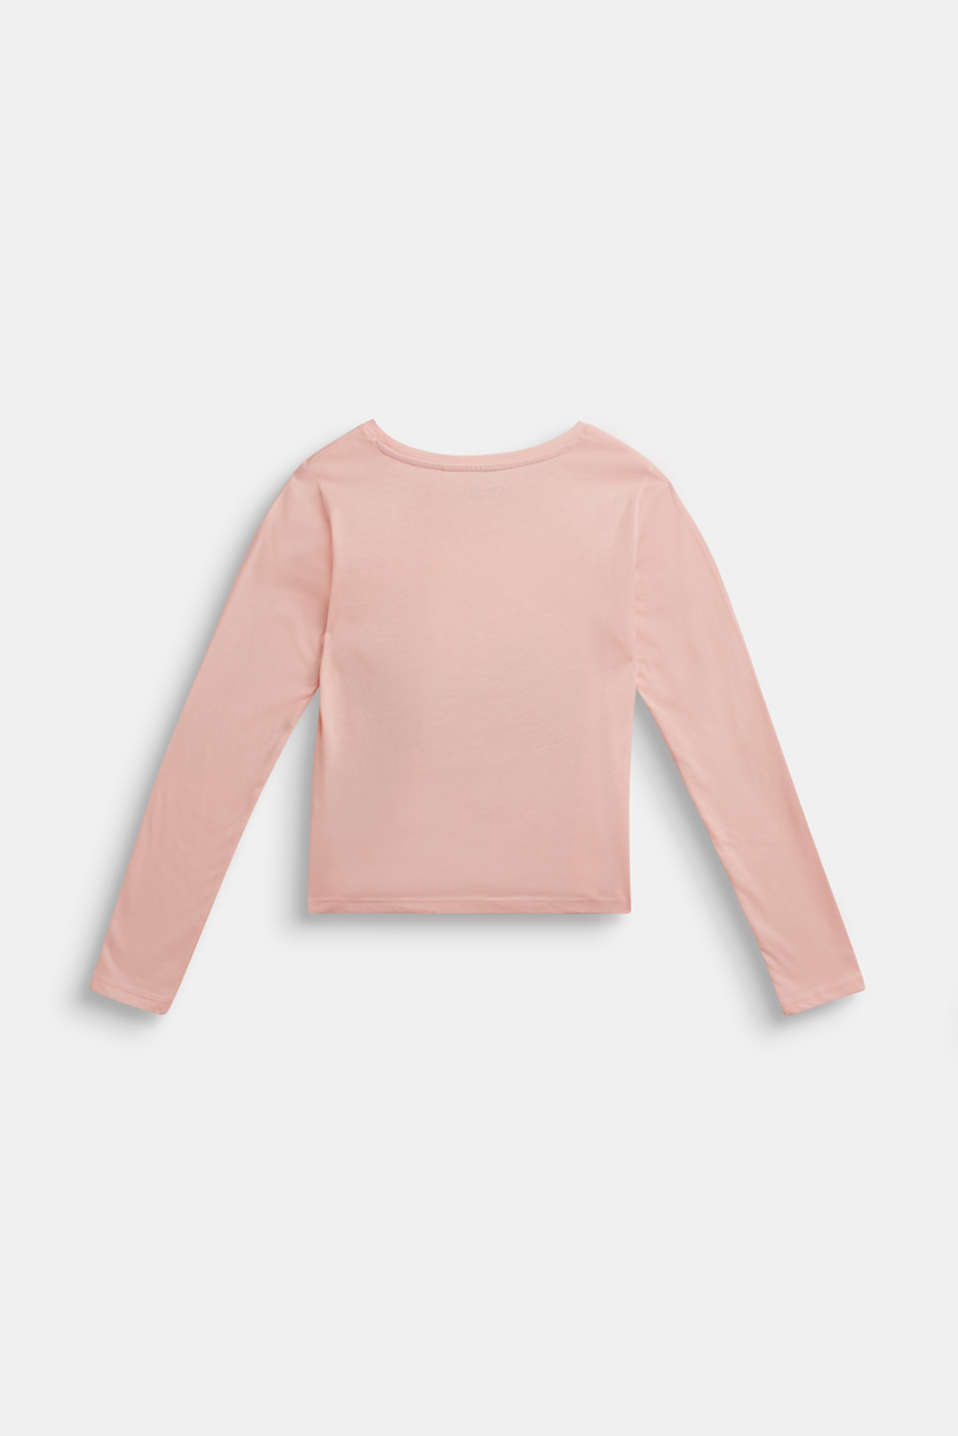 Glittering long sleeve top, 100% cotton, LCTINTED ROSE, detail image number 1